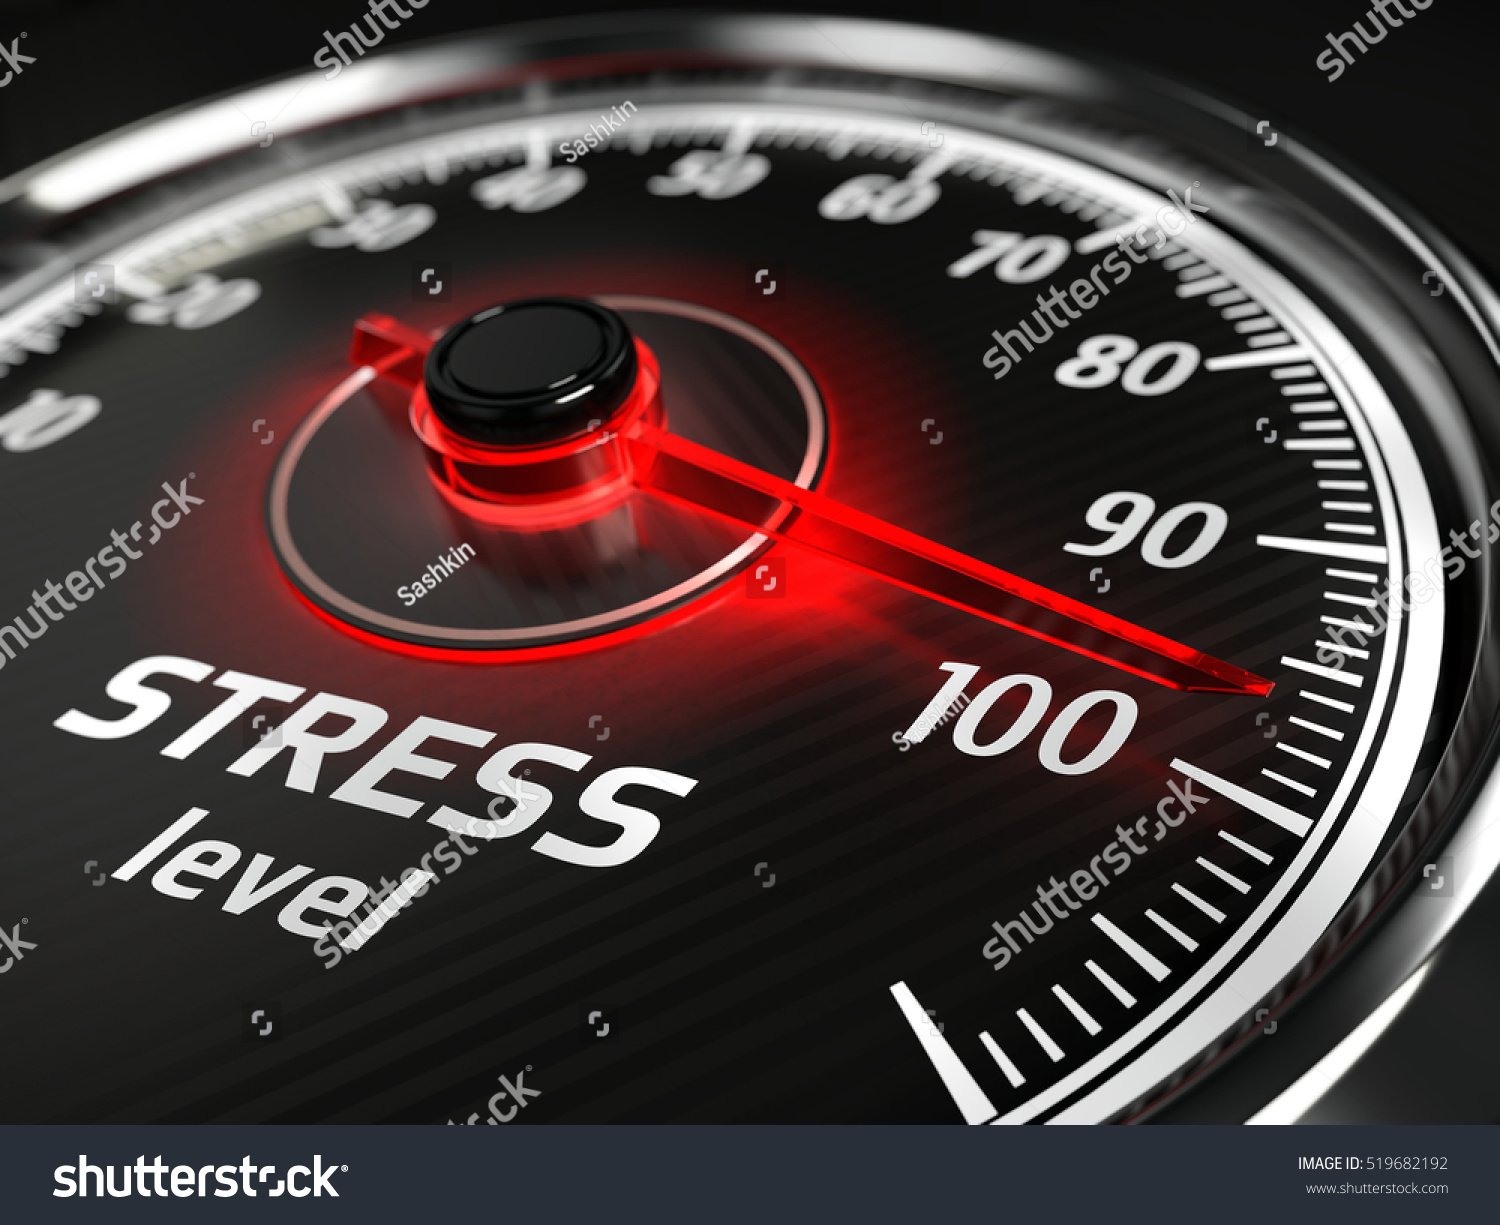 Stress Level Meter : Stress level meter concept d illustration